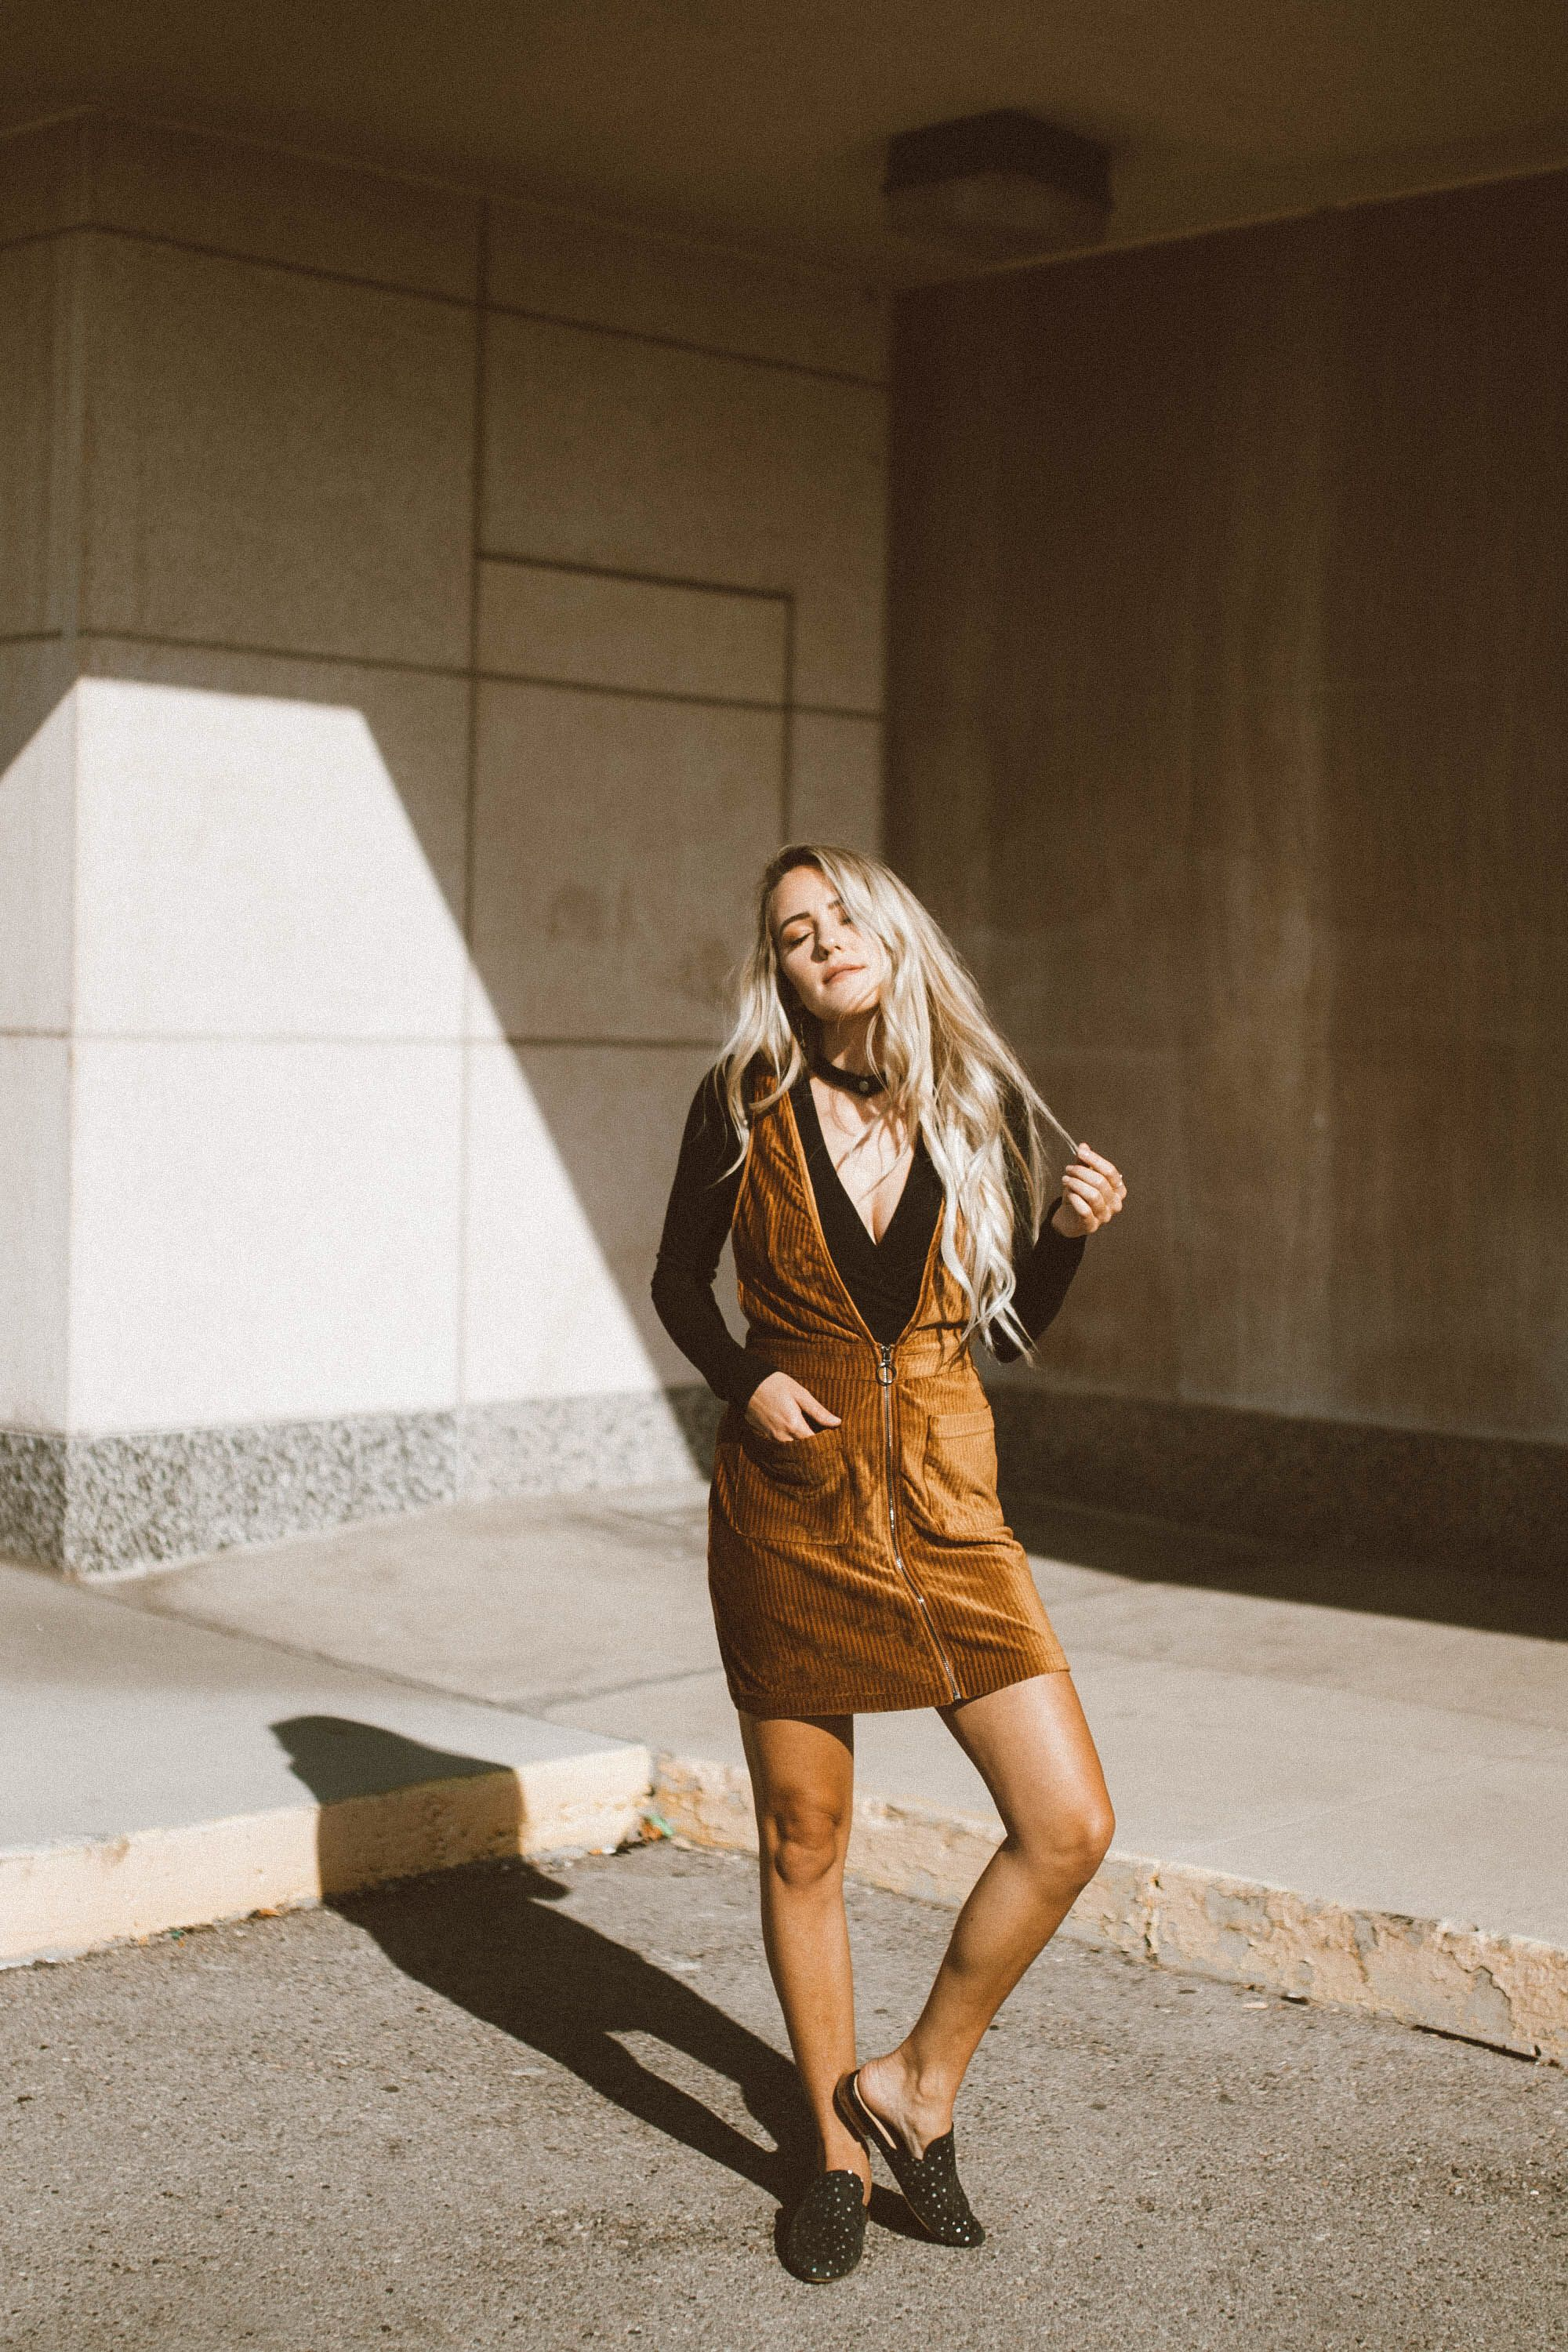 Free frenzy overall dress the foxy kind pinterest dresses